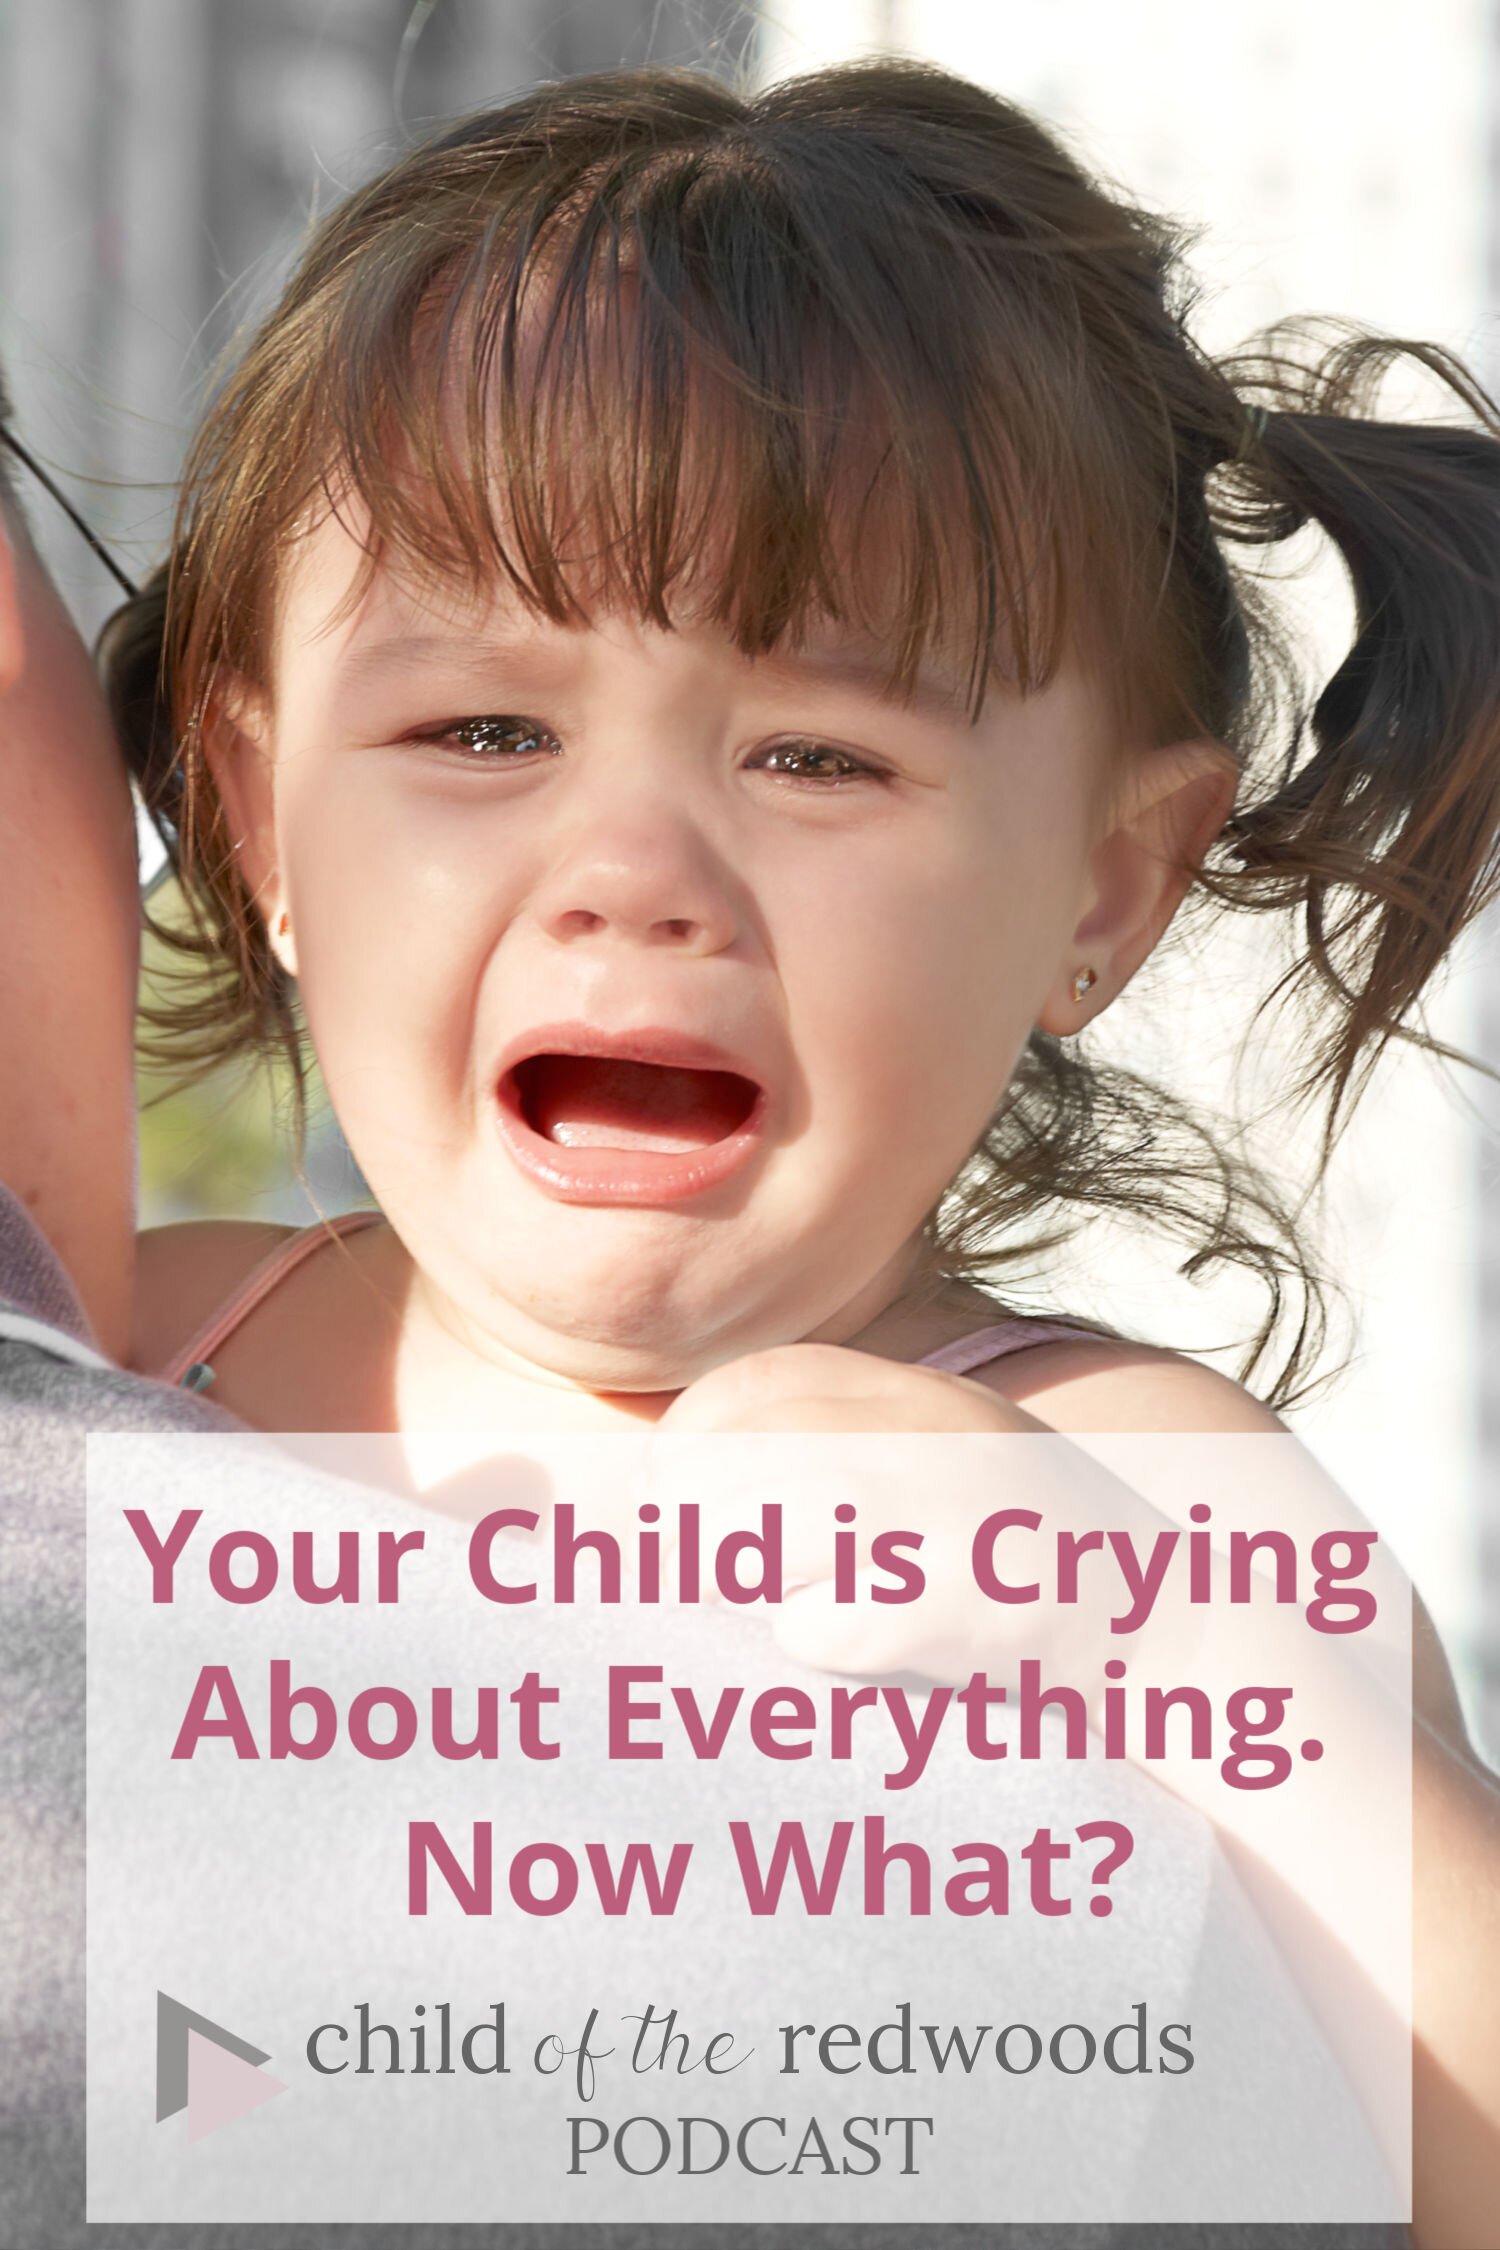 Your Child is Crying About Everything. Now What?